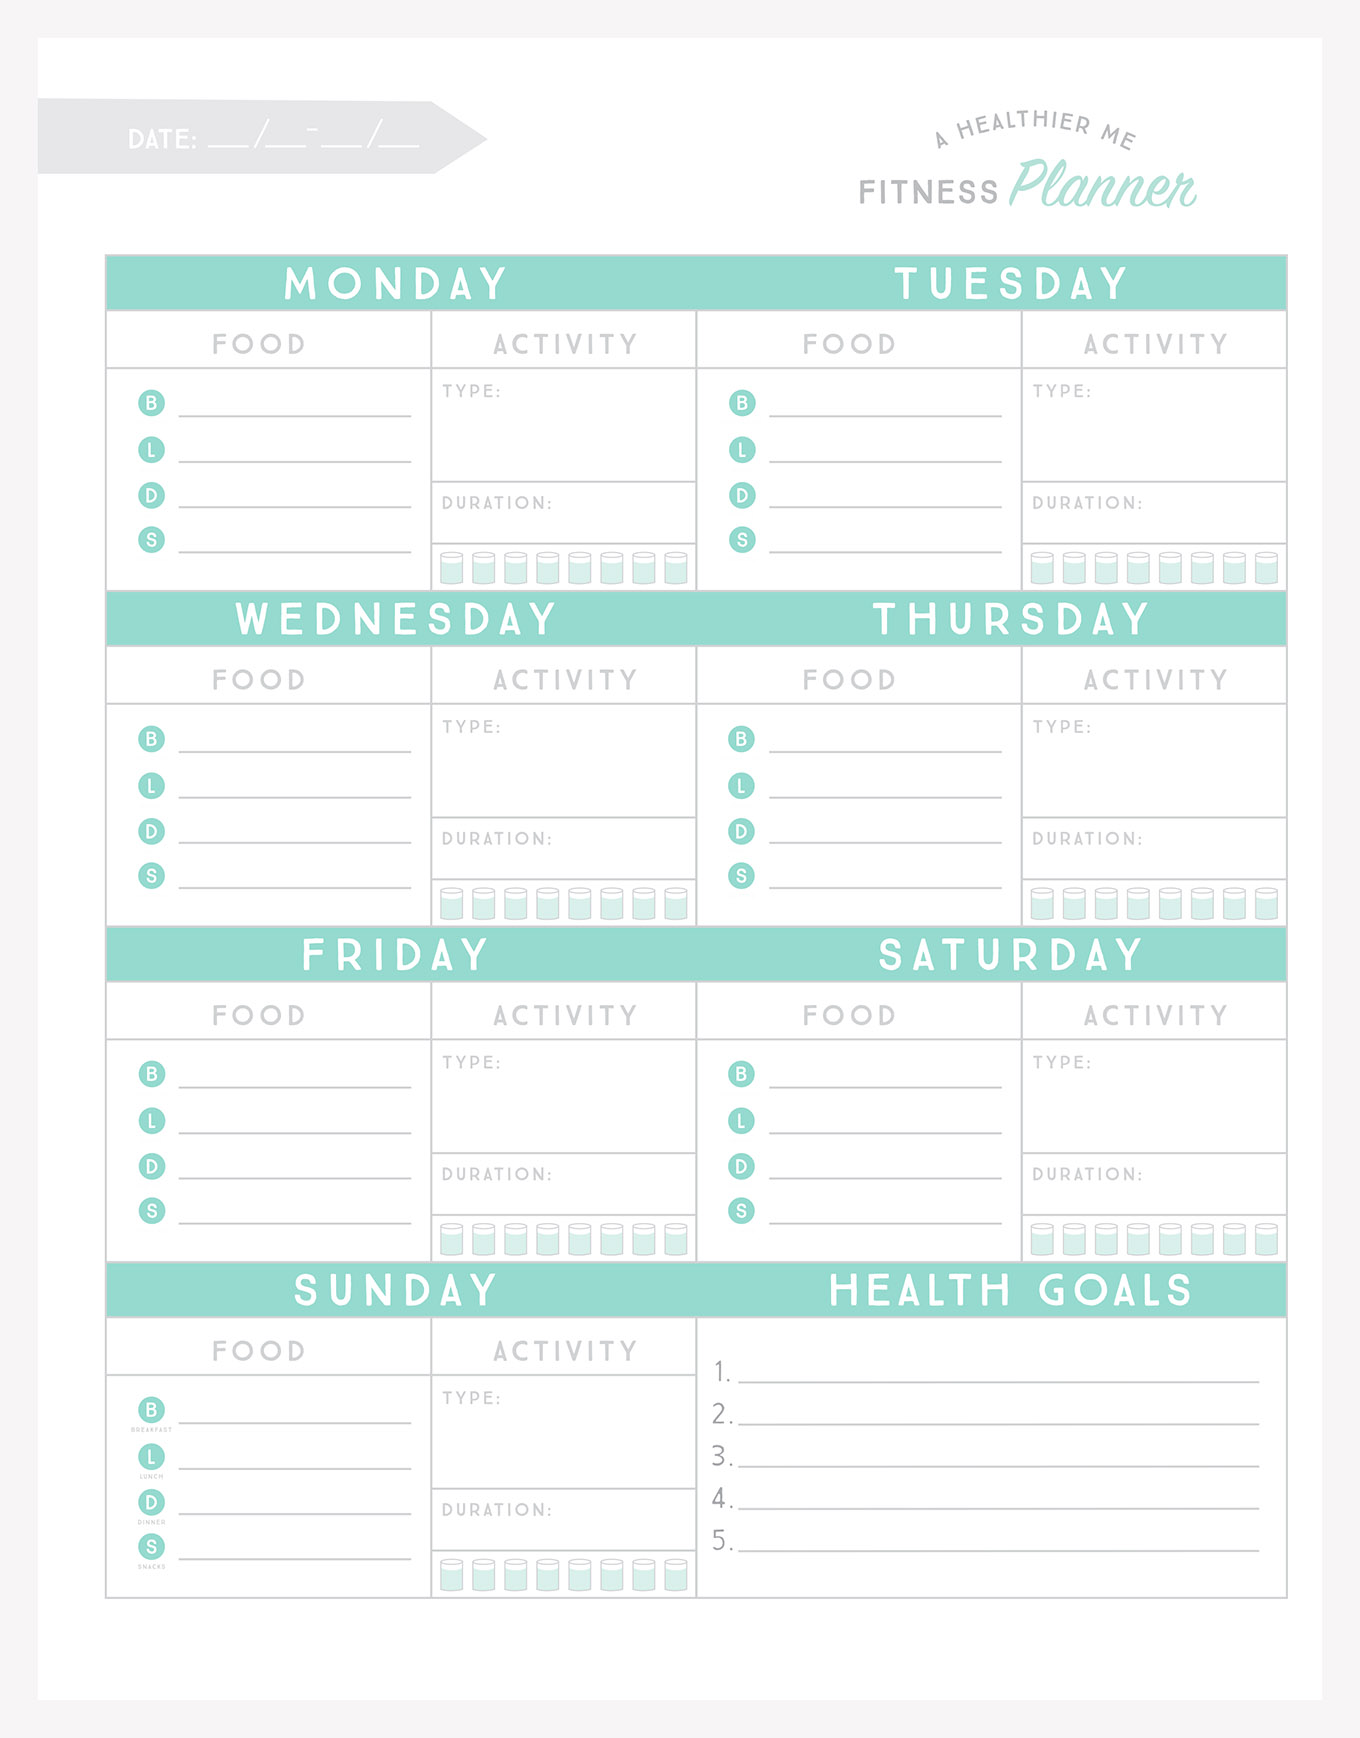 photo about Fitness Planner Printable titled Cost-free Printable Physical fitness Planner